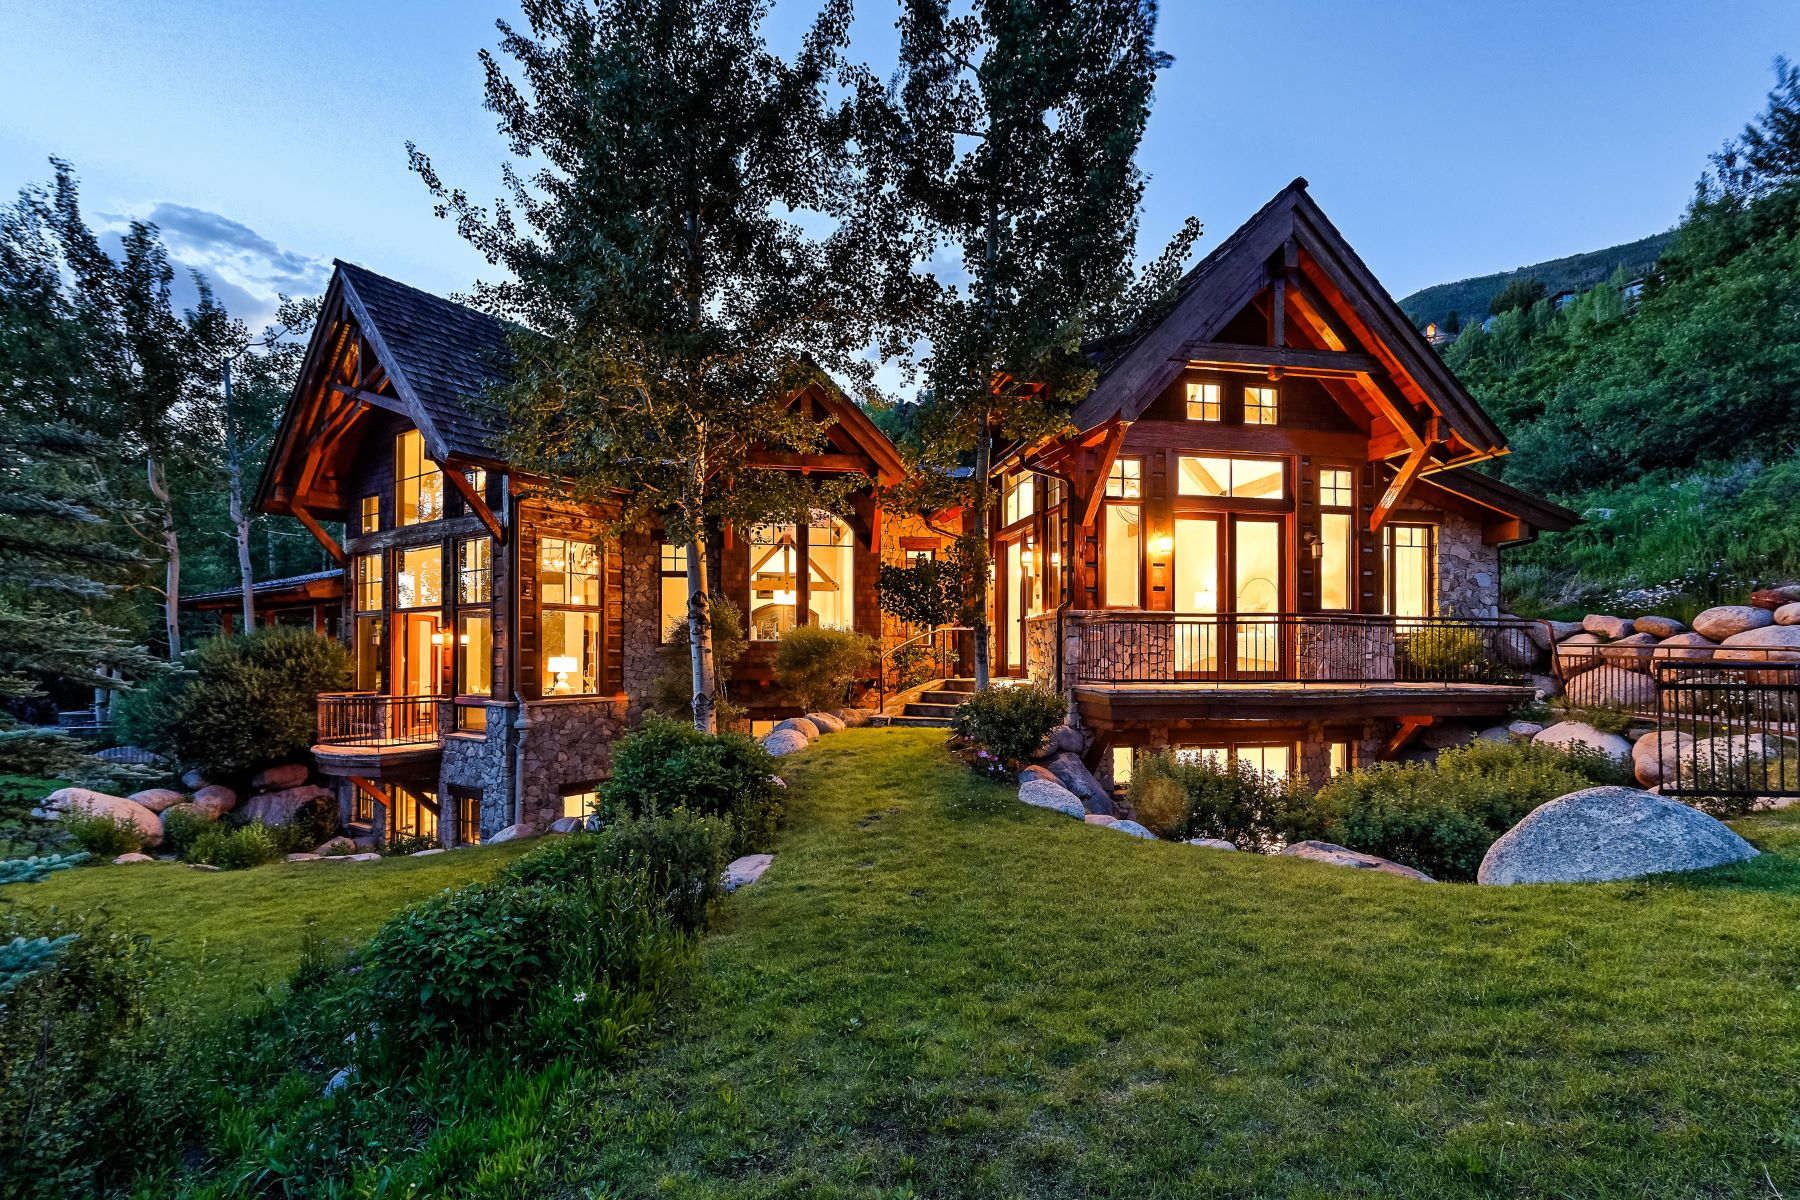 Single Family Home for Active at A Modernized Mountain Classic 27 Nighthawk Drive Aspen, Colorado 81611 United States